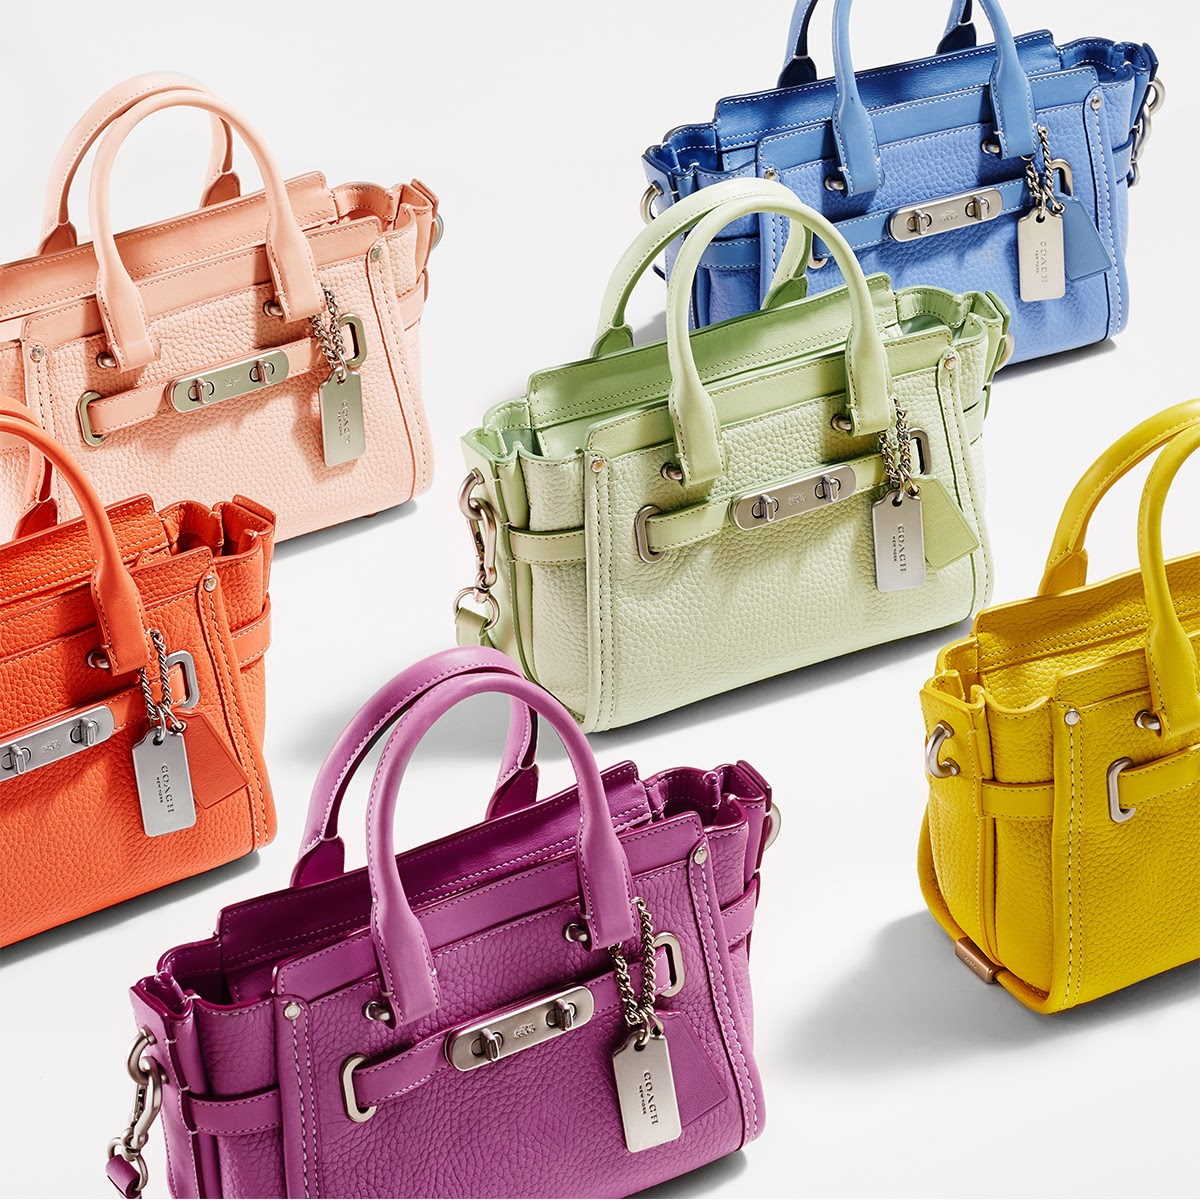 04ddbeb448c1 All about Rainbow collections ( Coach / Michael kors from Purseforum ...